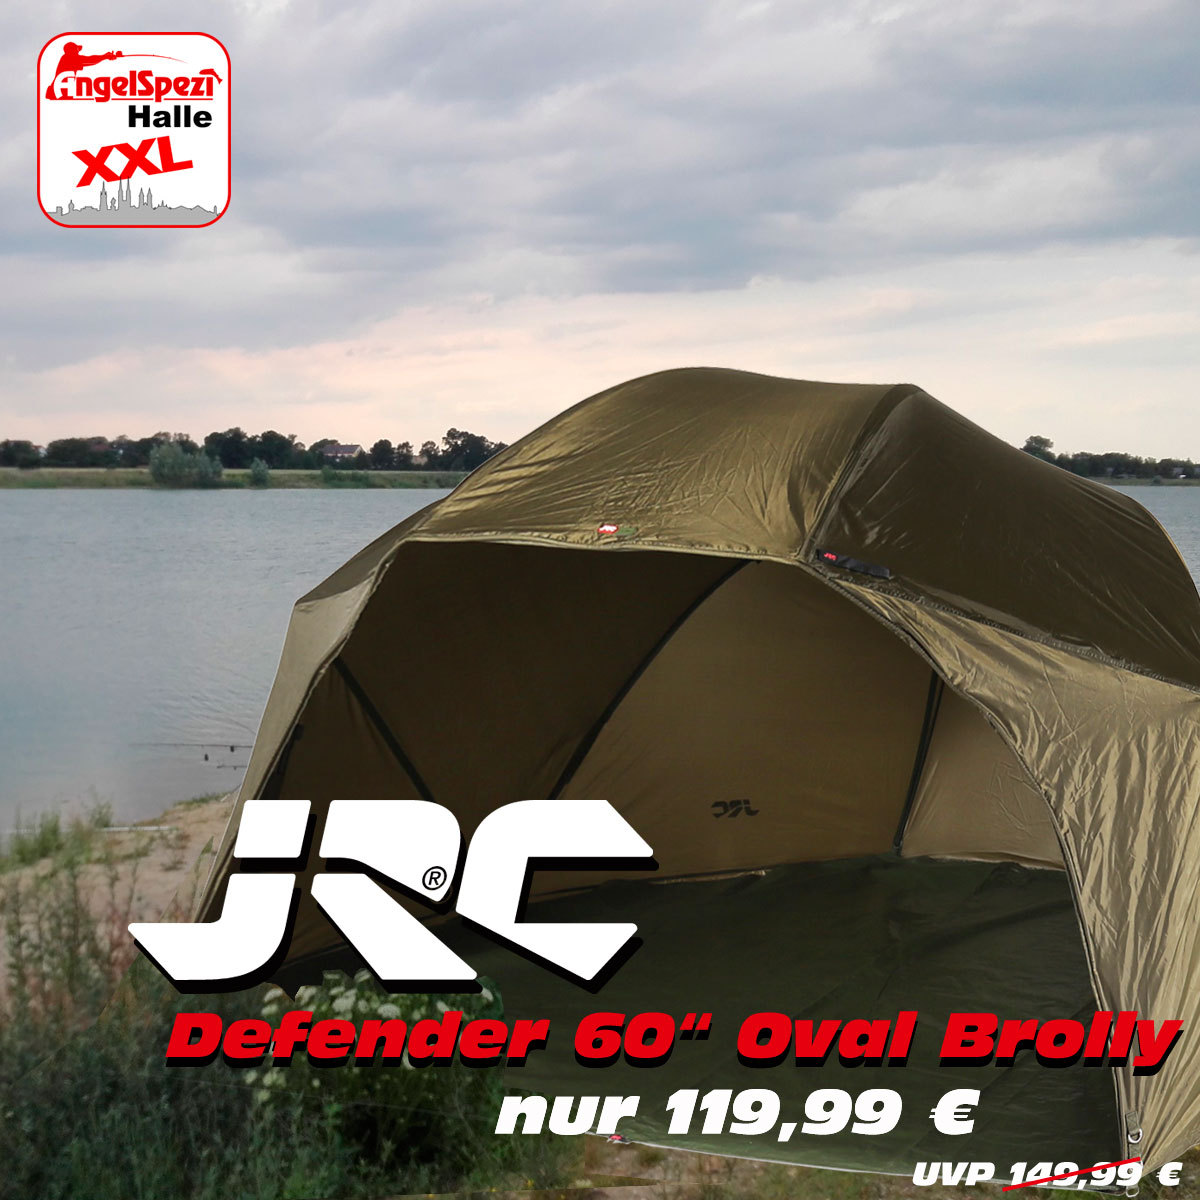 JRC Defender Oval-Brolly